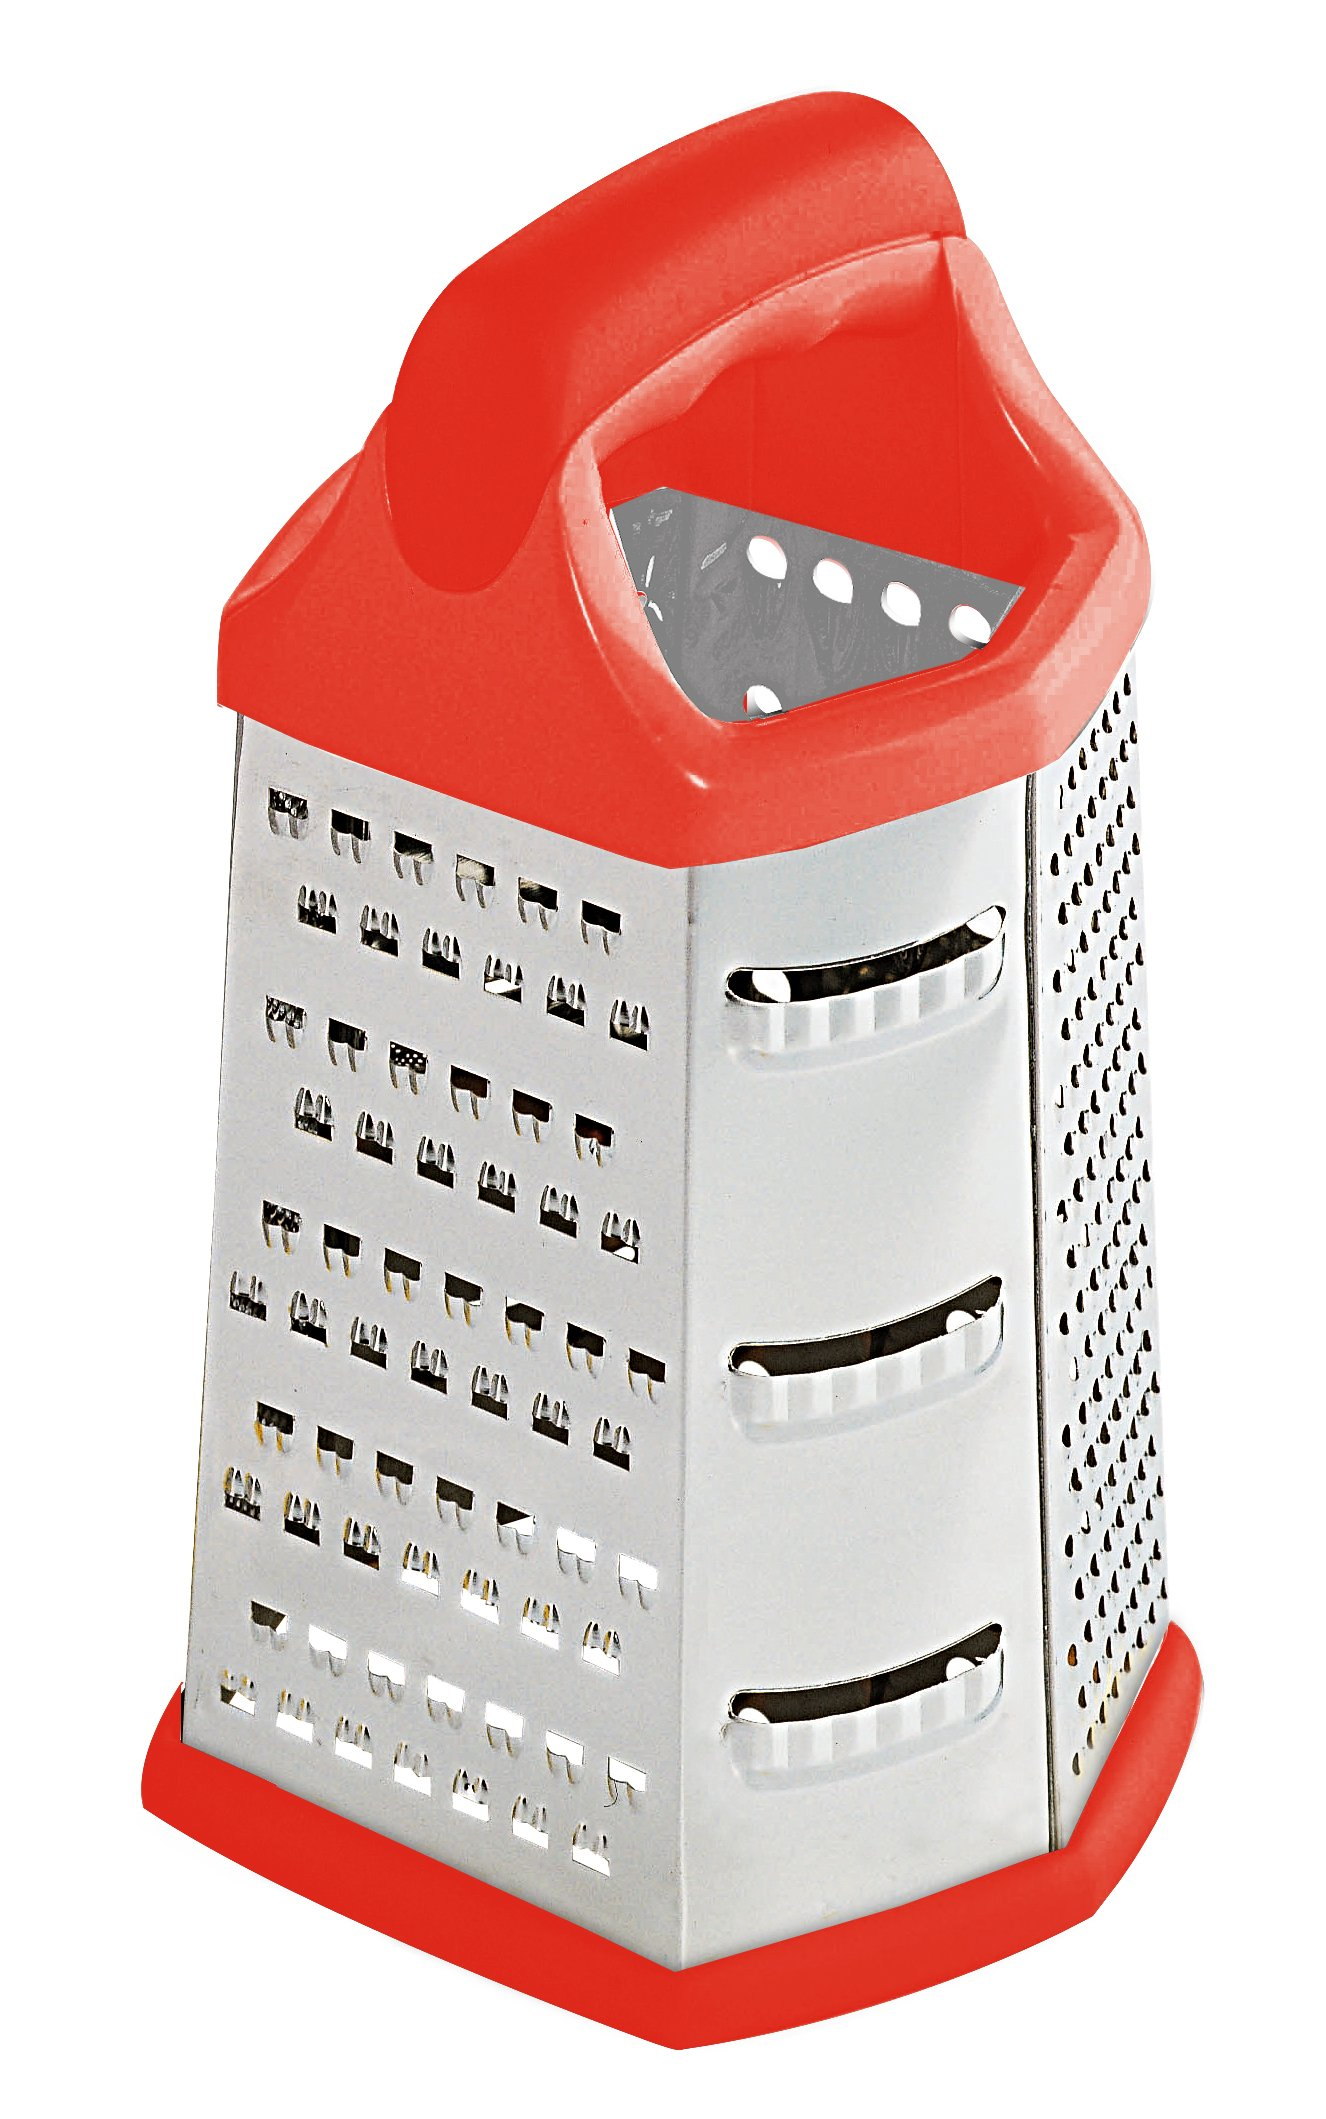 Home Basics 6 Sided Cheese Grater, Red